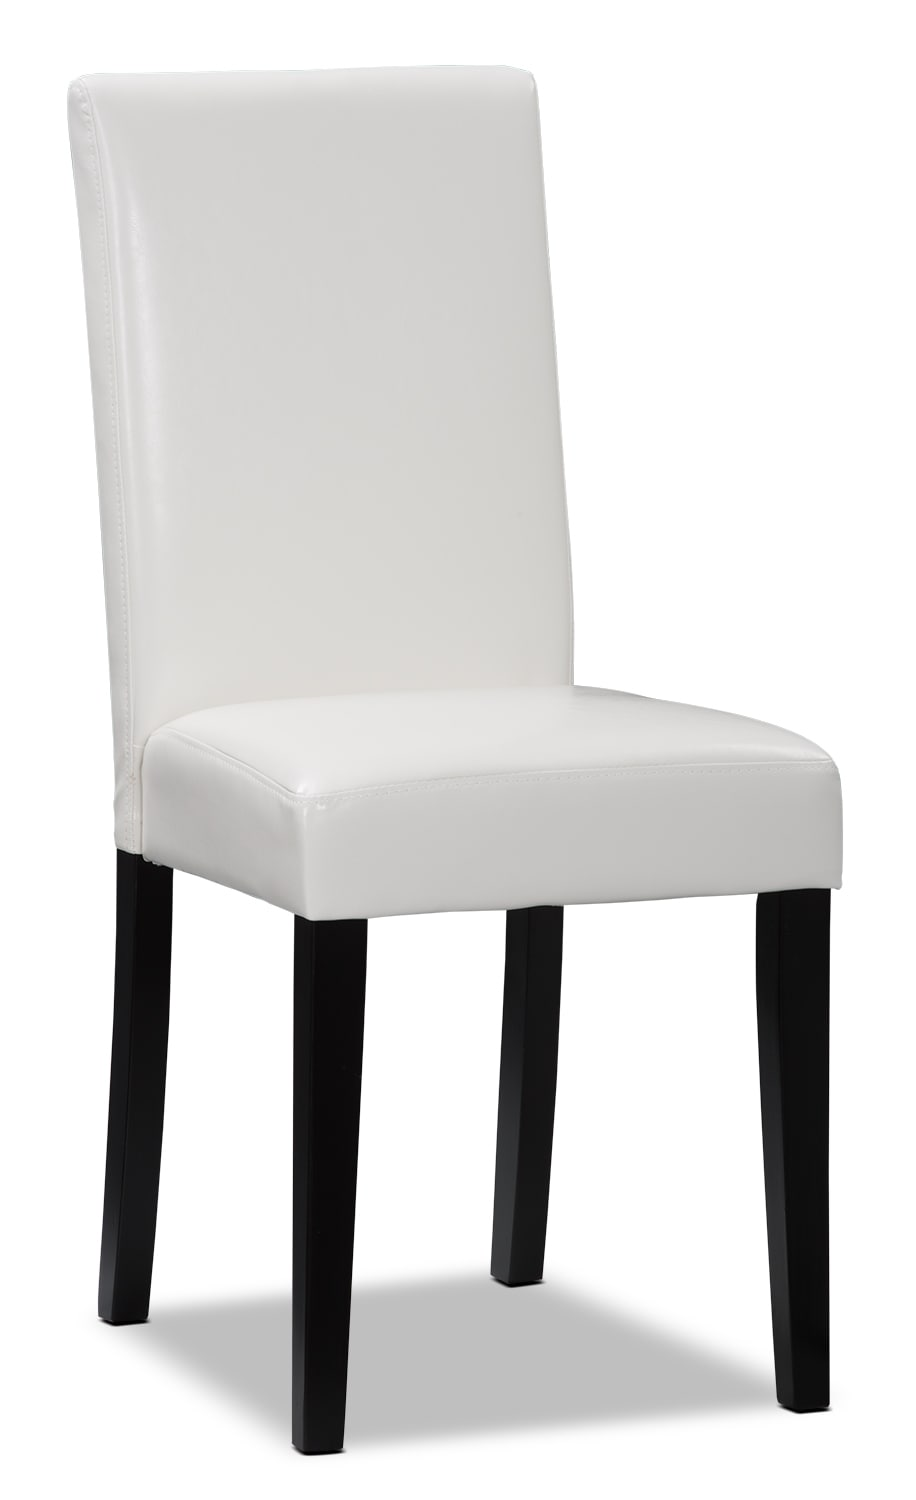 White Faux Leather Accent Dining Chair